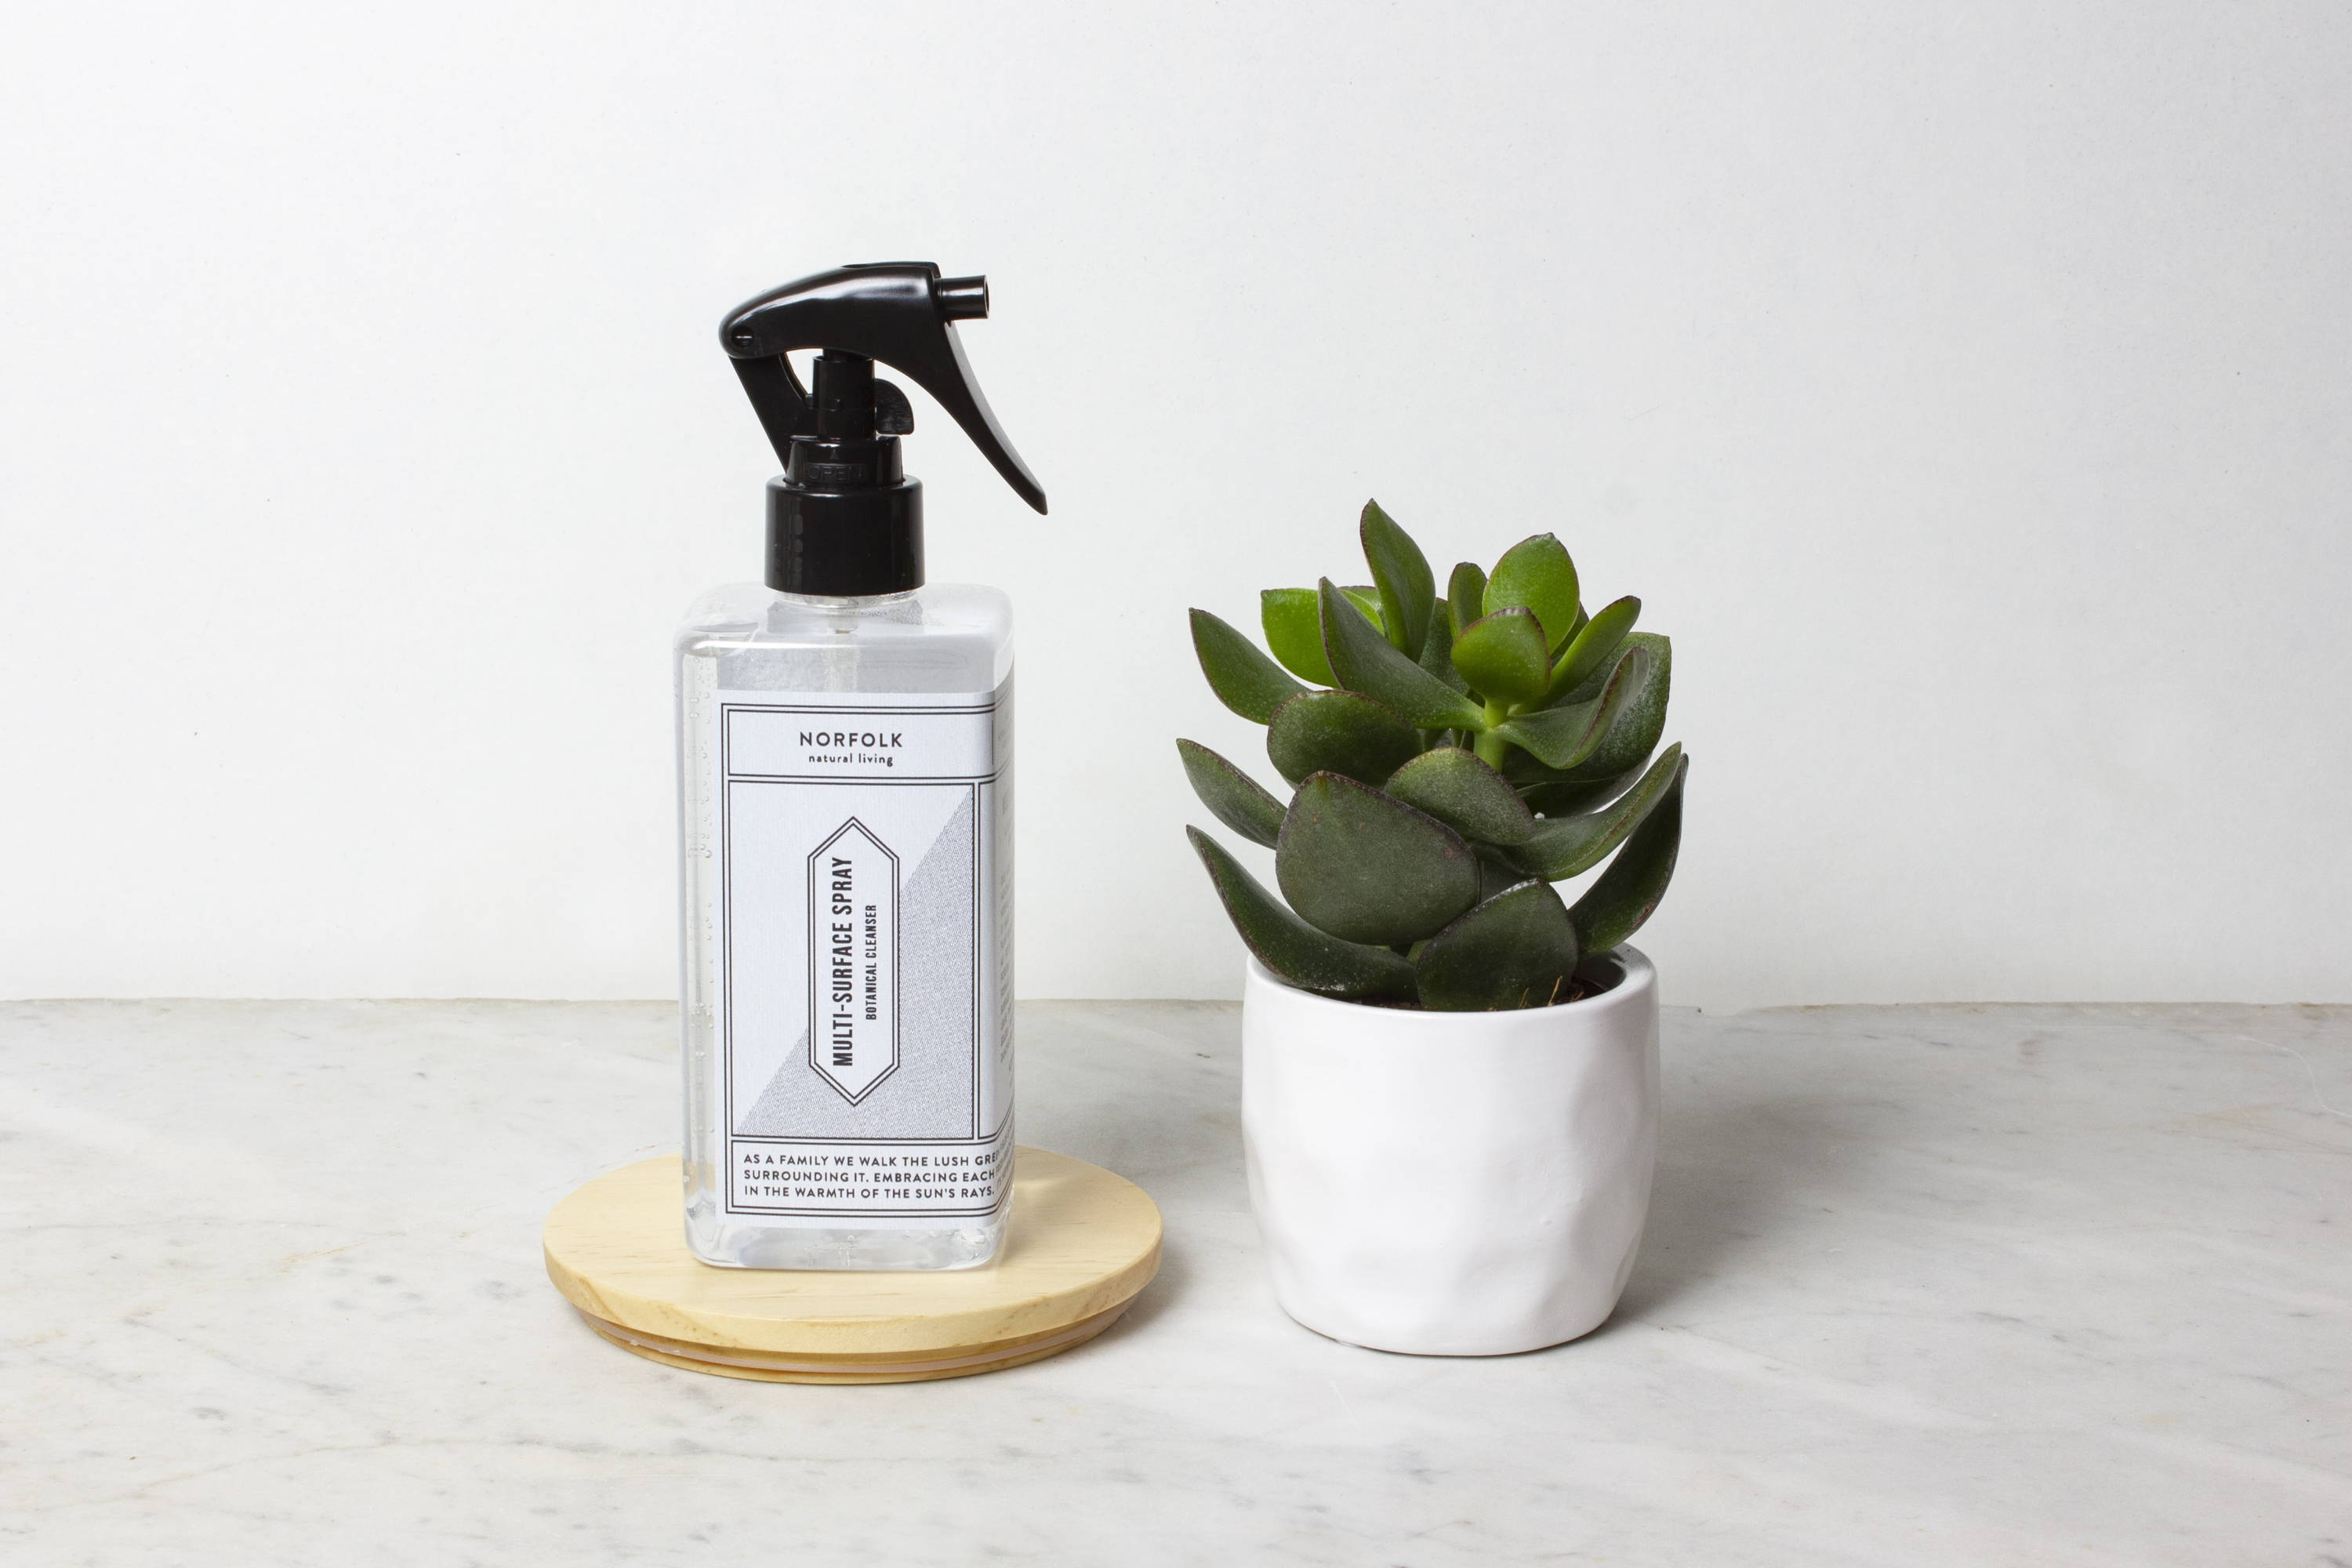 Wholesale natural cleaning products